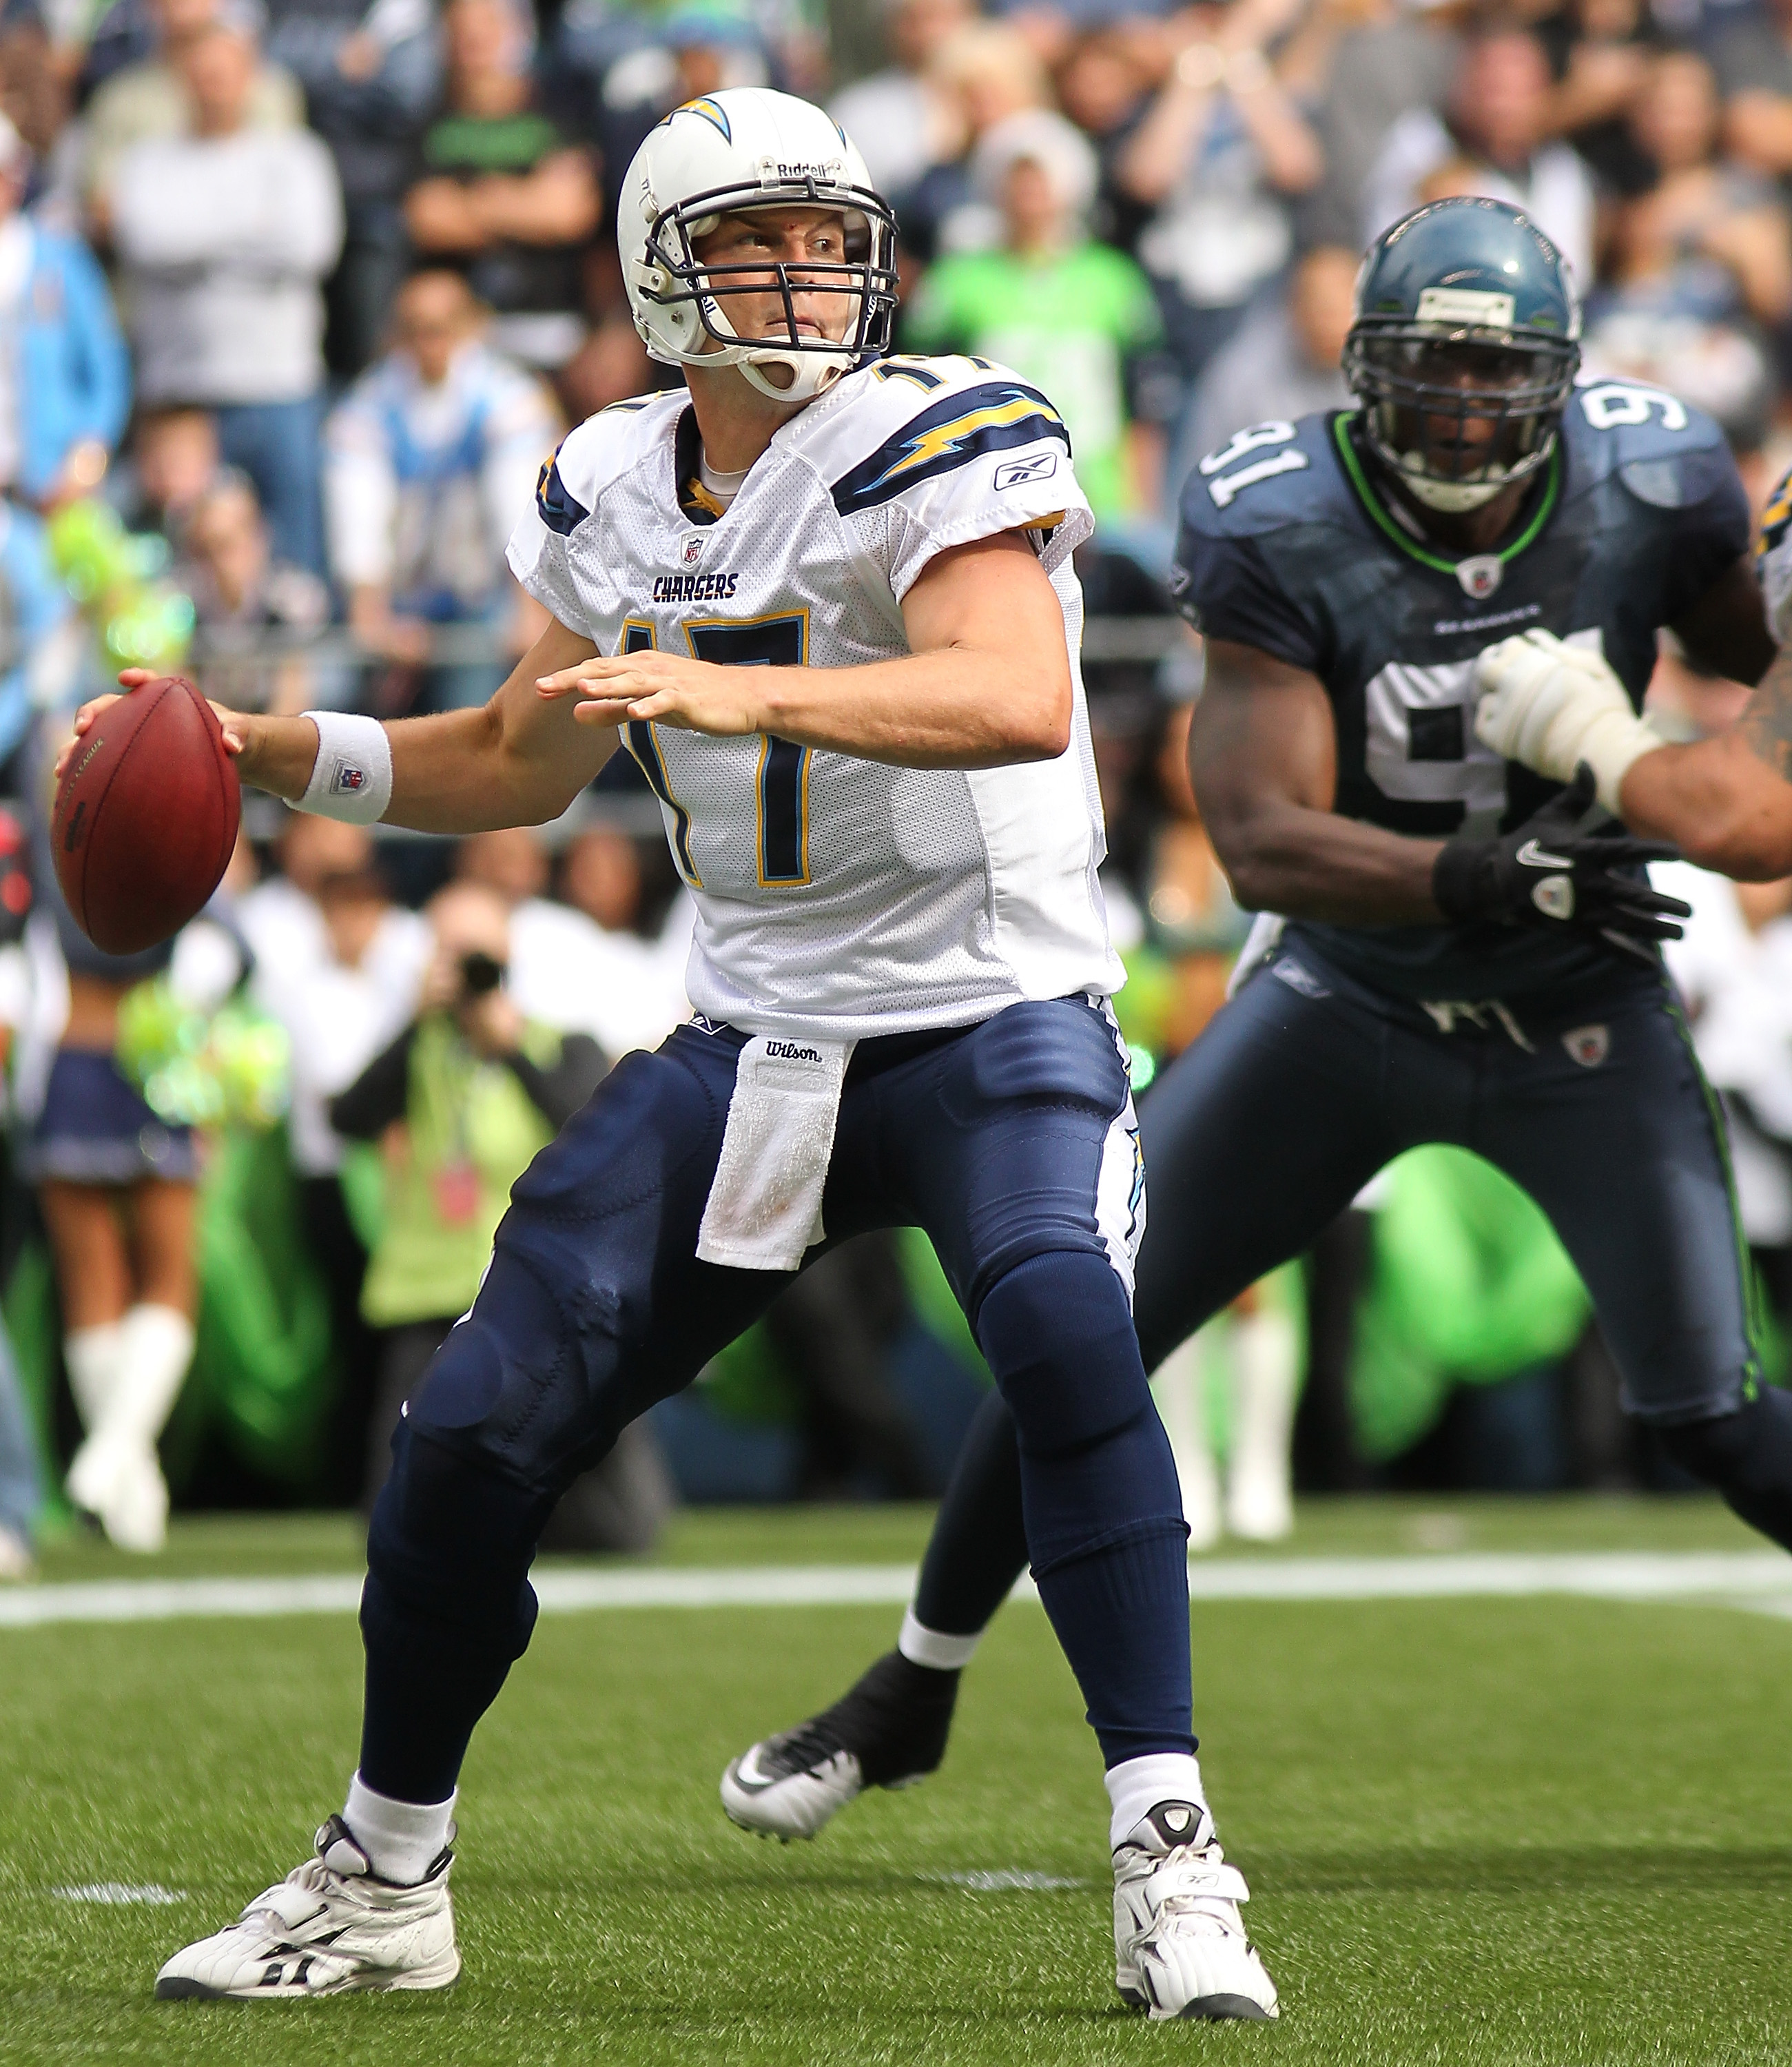 SEATTLE - SEPTEMBER 26:  Quarterback Philip Rivers #17 of the San Diego Chargers passes under pressure from Chris Clemons #91 of the Seattle Seahawks at Qwest Field on September 26, 2010 in Seattle, Washington. The Seahawks defeated the Chargers 27-20.(Ph